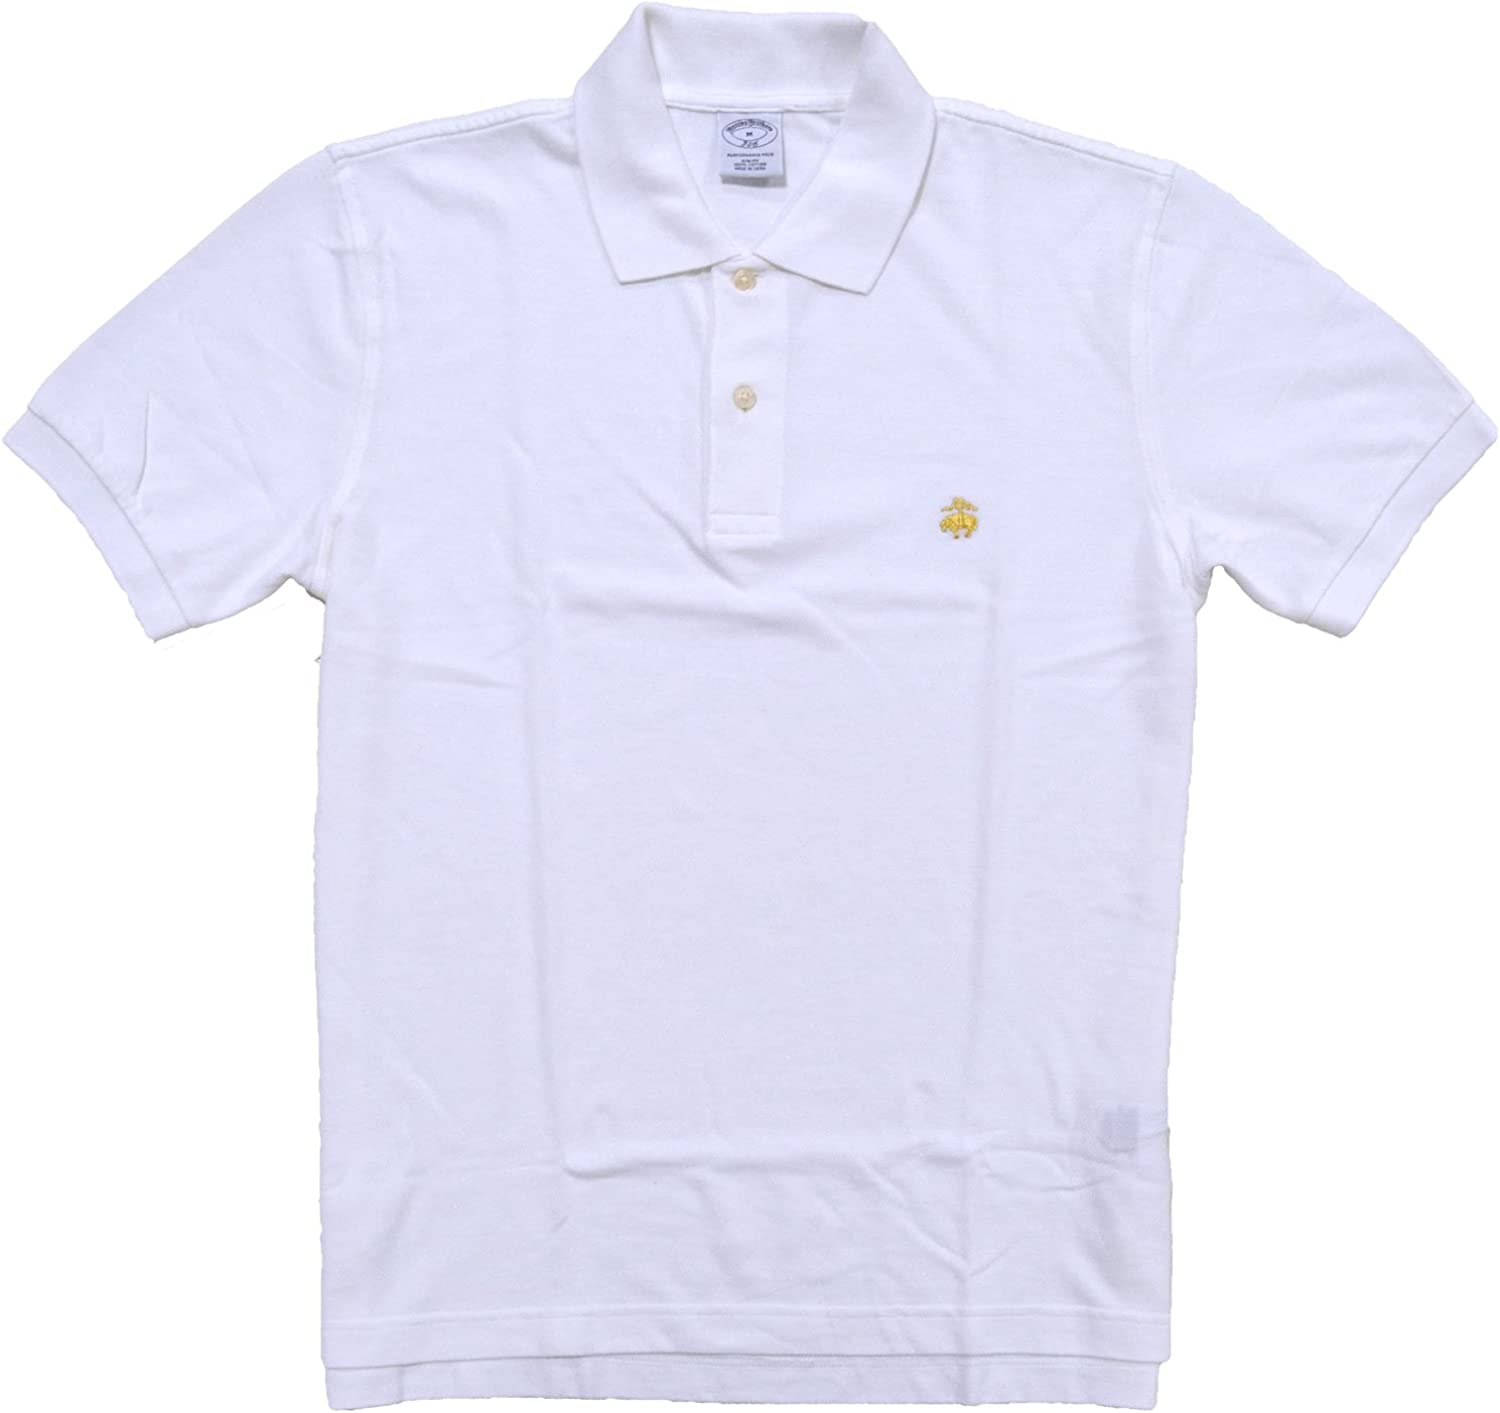 Brooks Brothers Golden All stores are sold Fleece Max 45% OFF Slim Polo Shirt Performance Fit